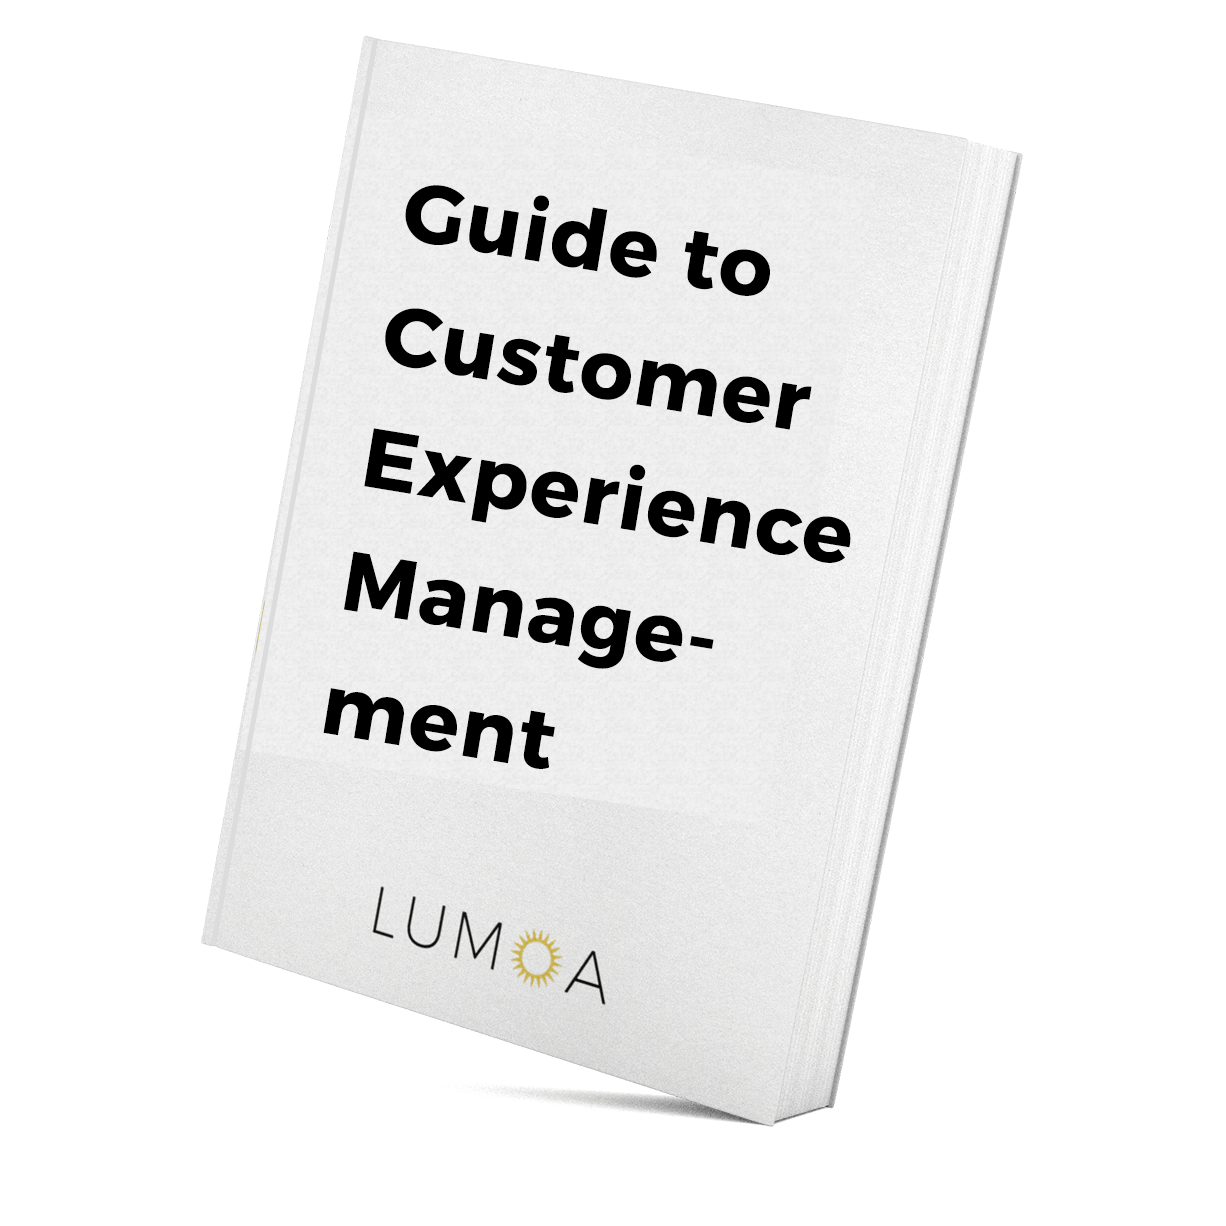 Cx Quick guide_book.png